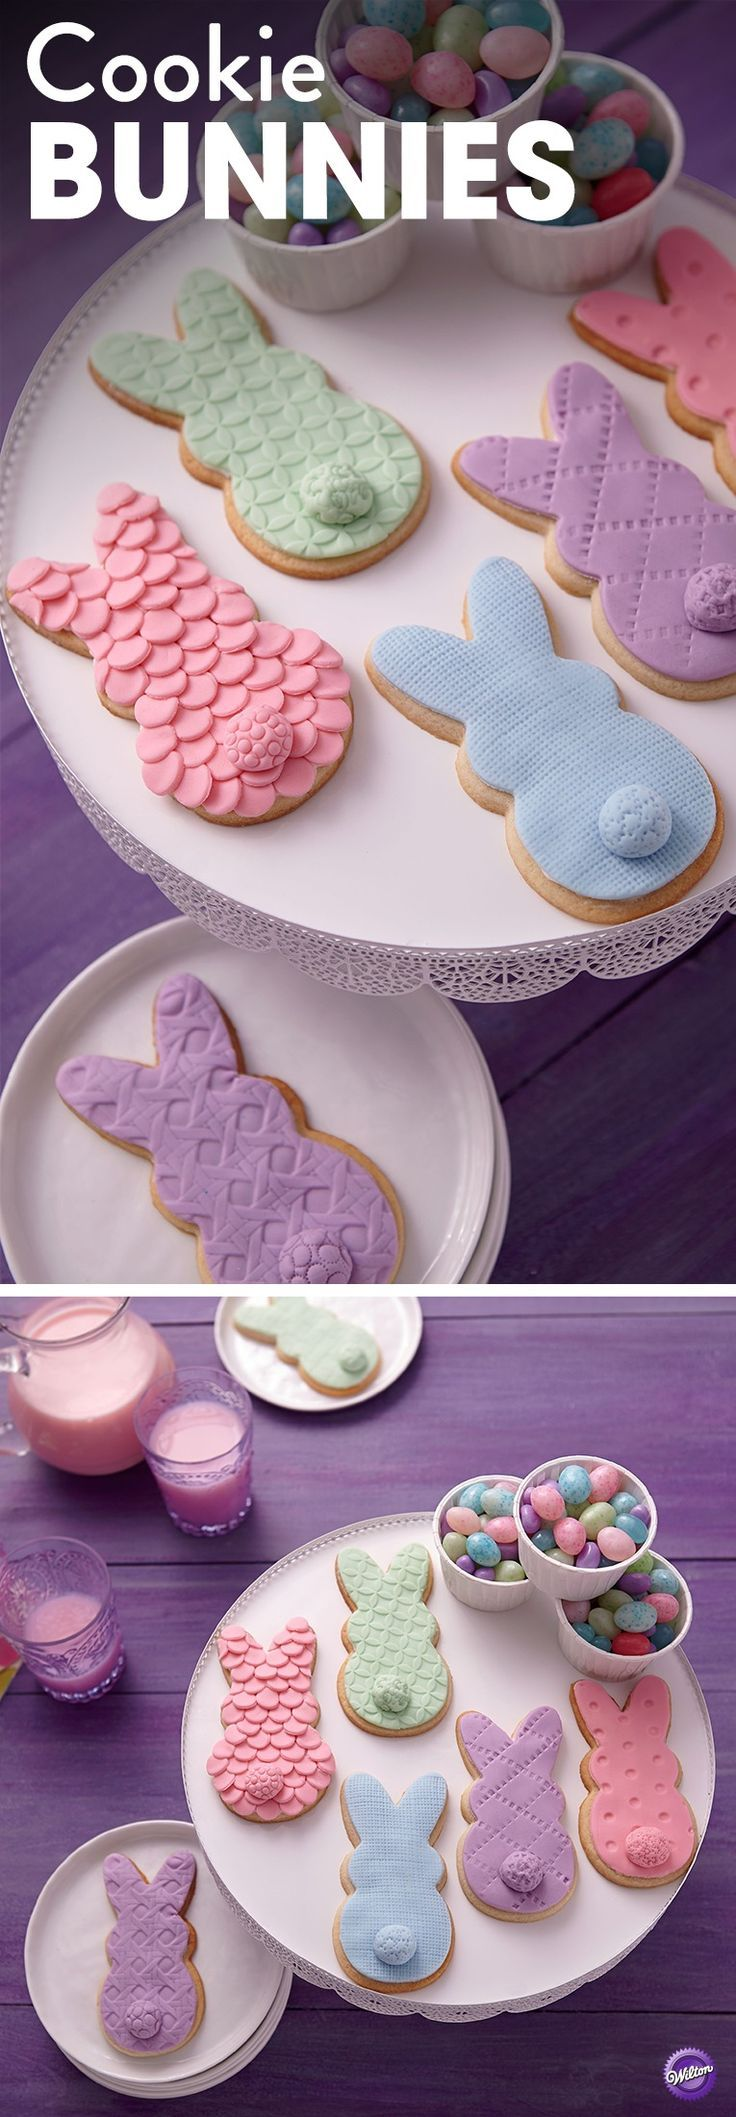 The bunny cookies are showing hop couture! Their fondant coats are done in cool pastels and textured with the Wilton Pattern Embosser Set and decorating tips. Perfect as treats after an Easter egg hunting activity!